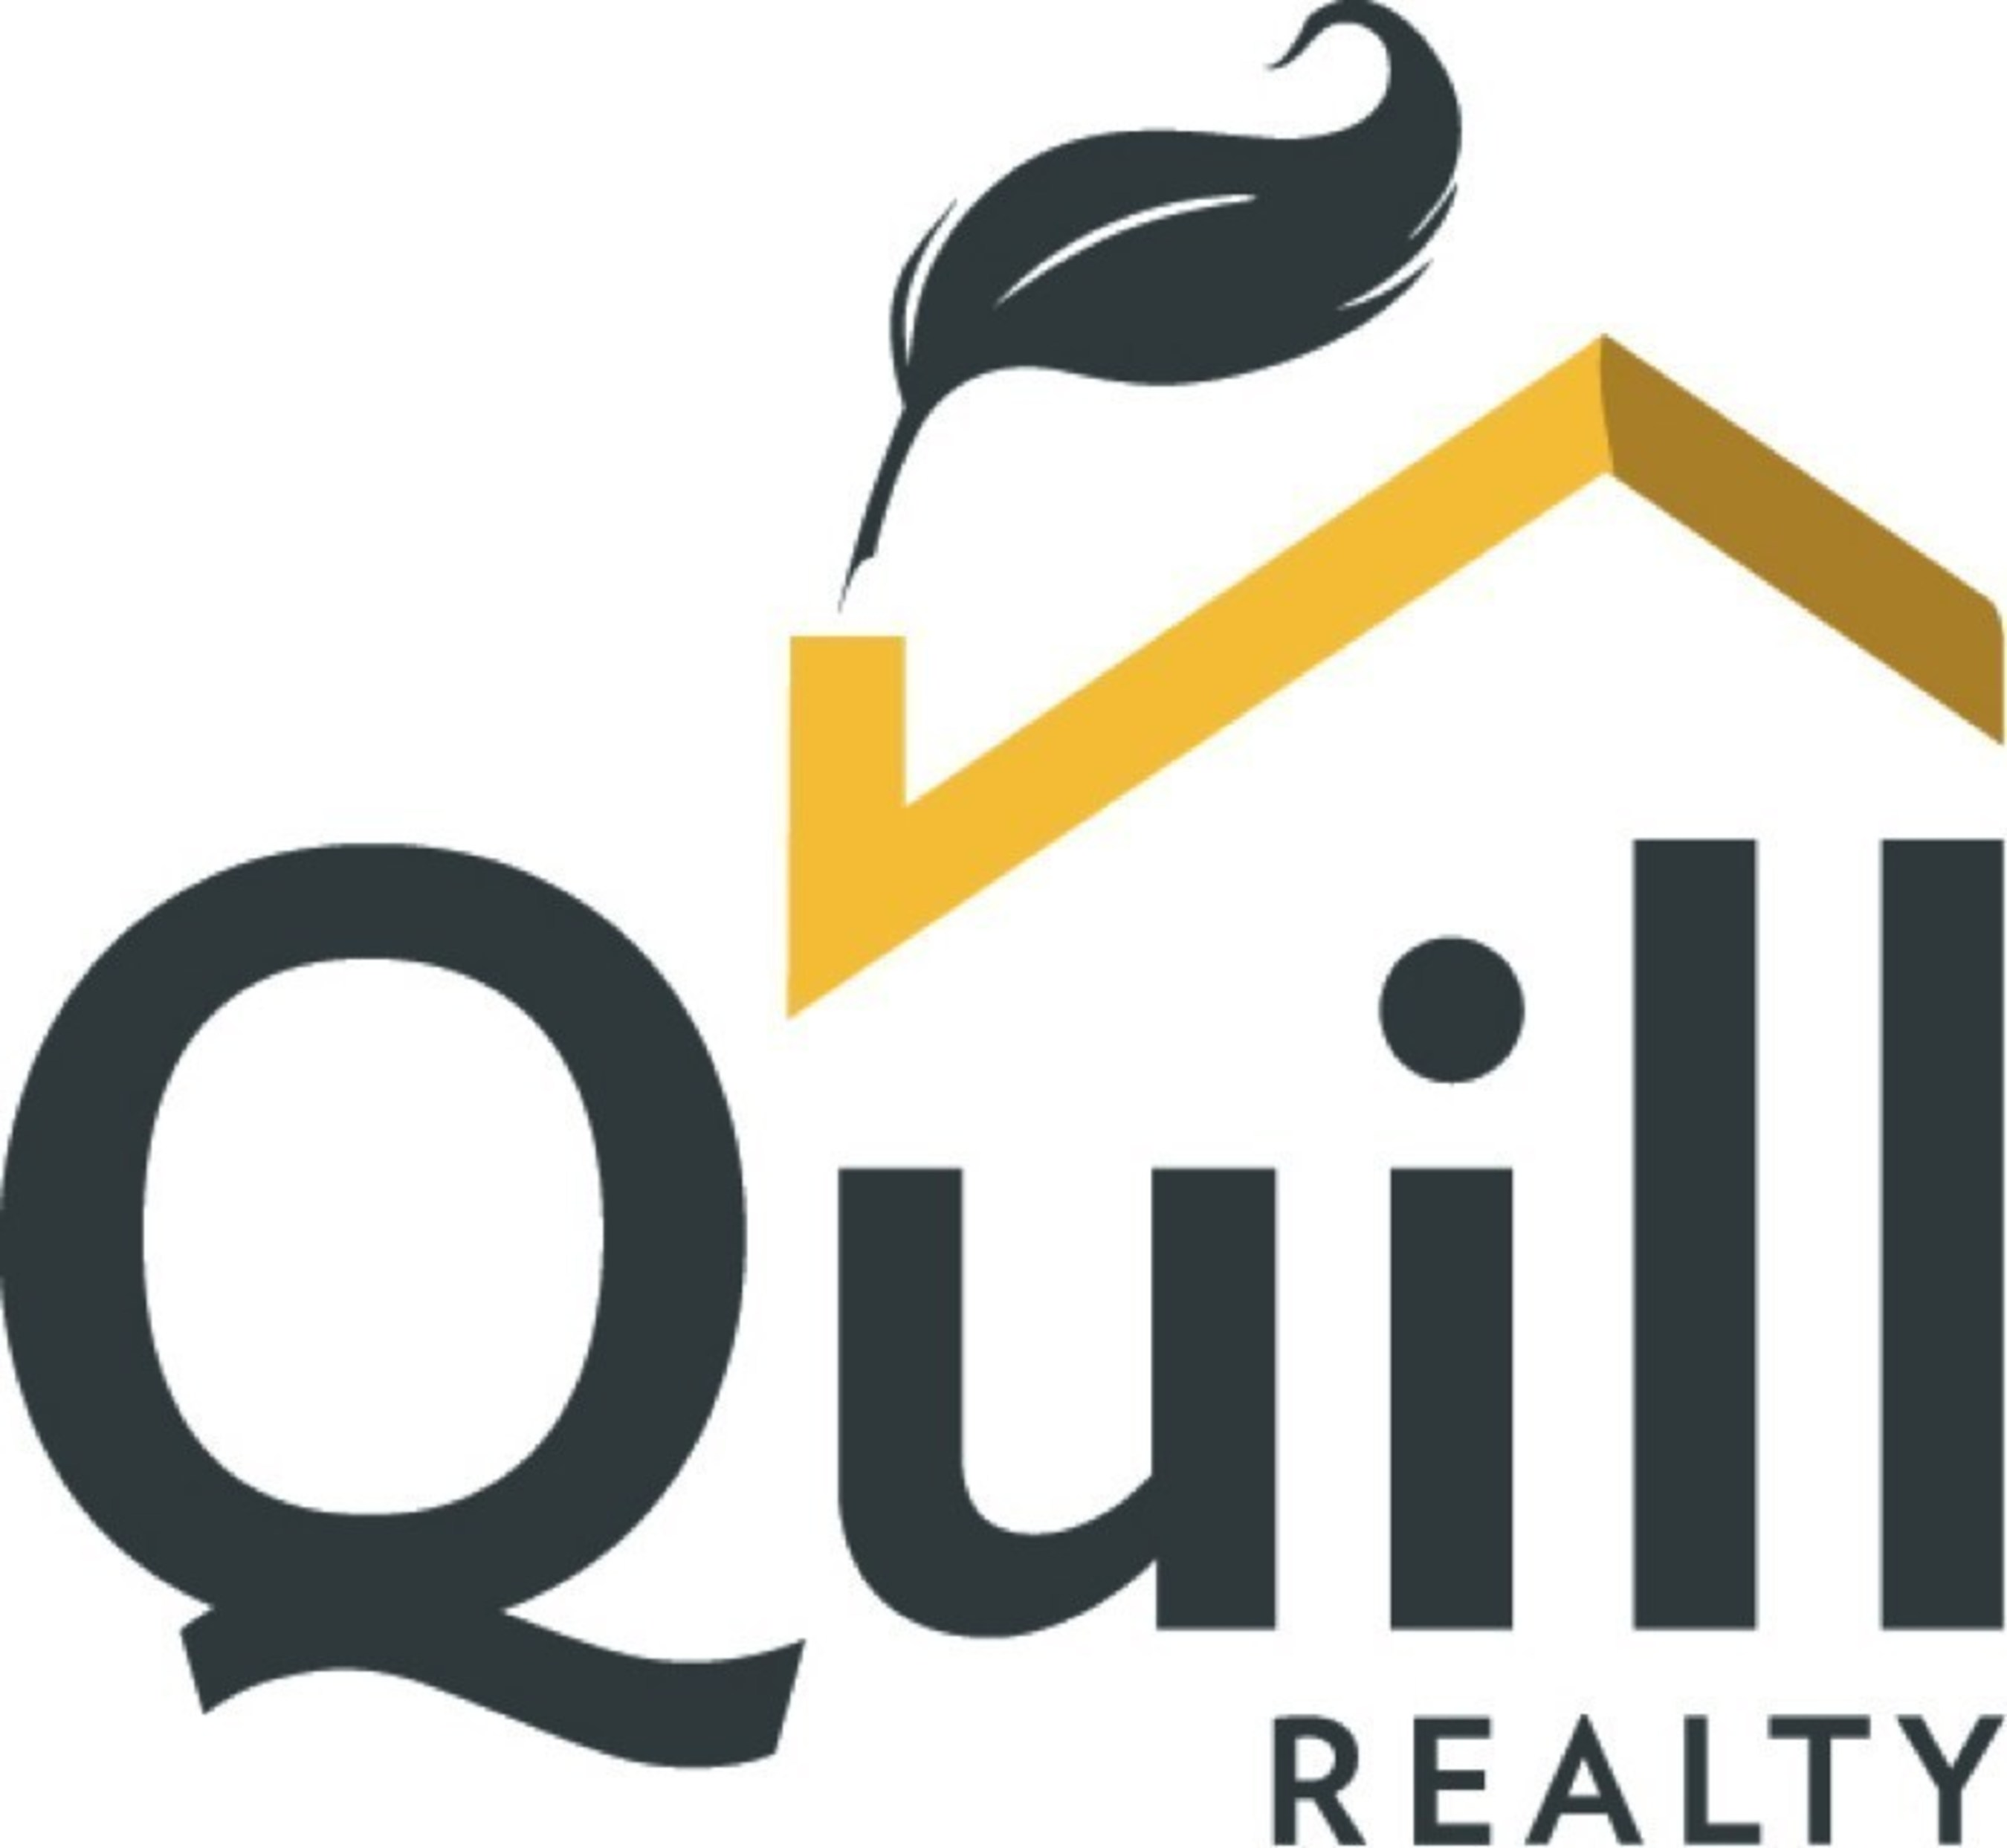 Quill Realty